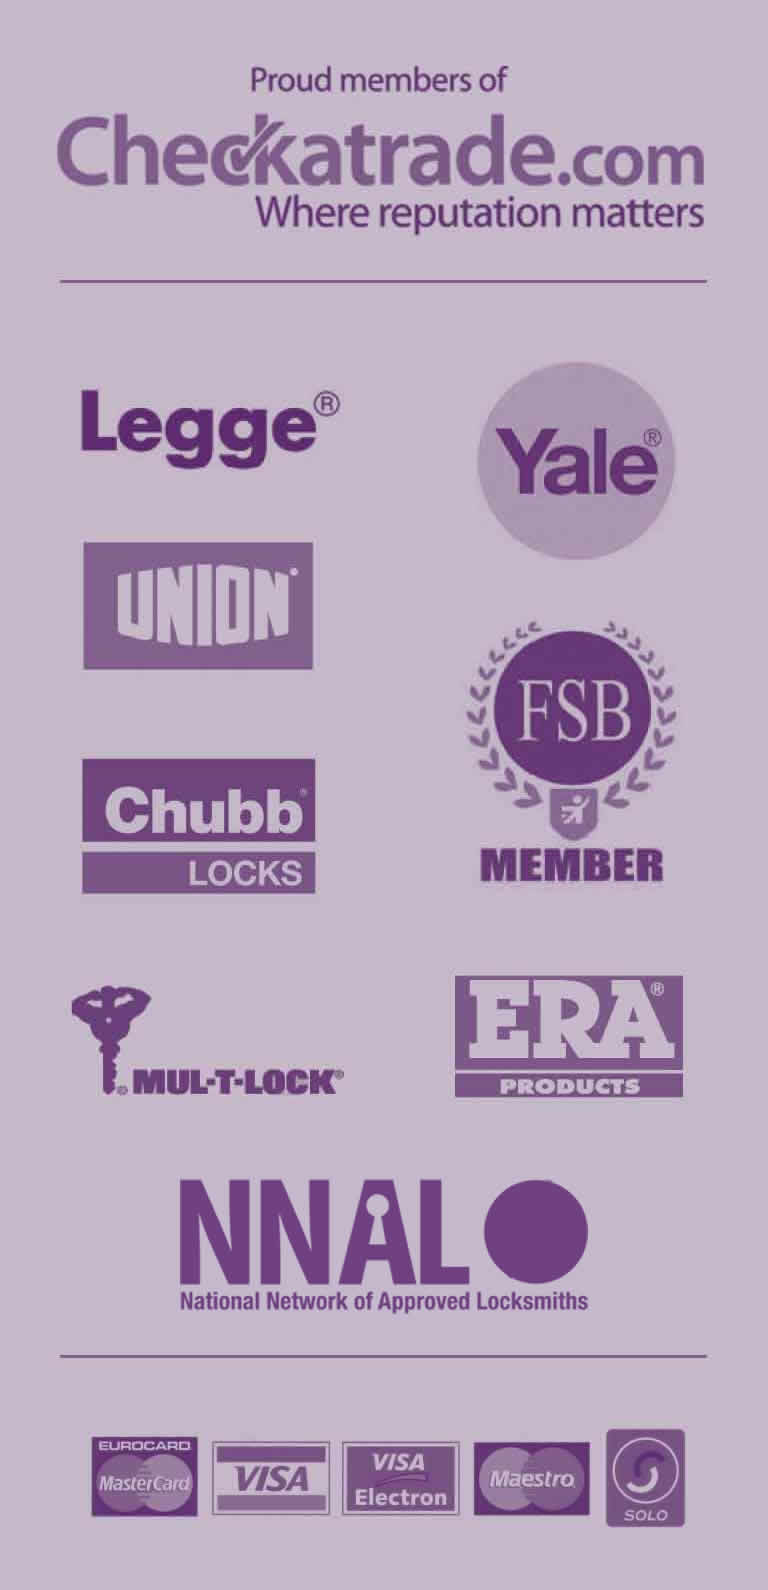 Yale, Union, Chubb Locks, FSB Member, Multi Lock,  ERA